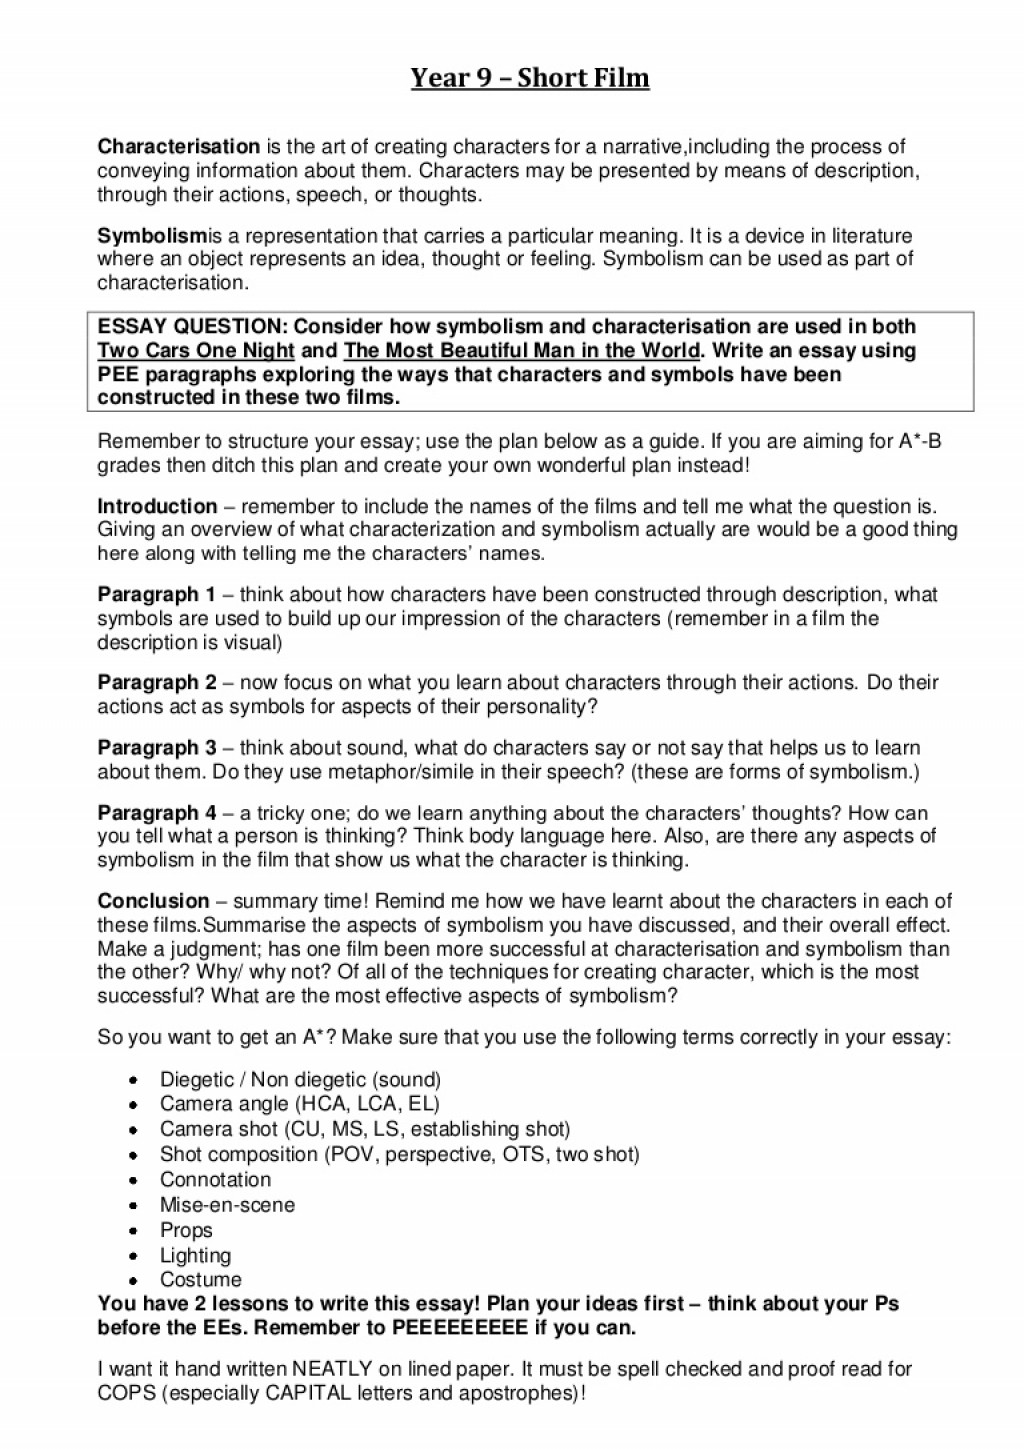 004 Essay Example Topics For Year Year9shortfilm Chracterisationsymbolismessay Phpapp02 Thumbnail Archaicawful 9 Questions Grade Olds Igcse Large